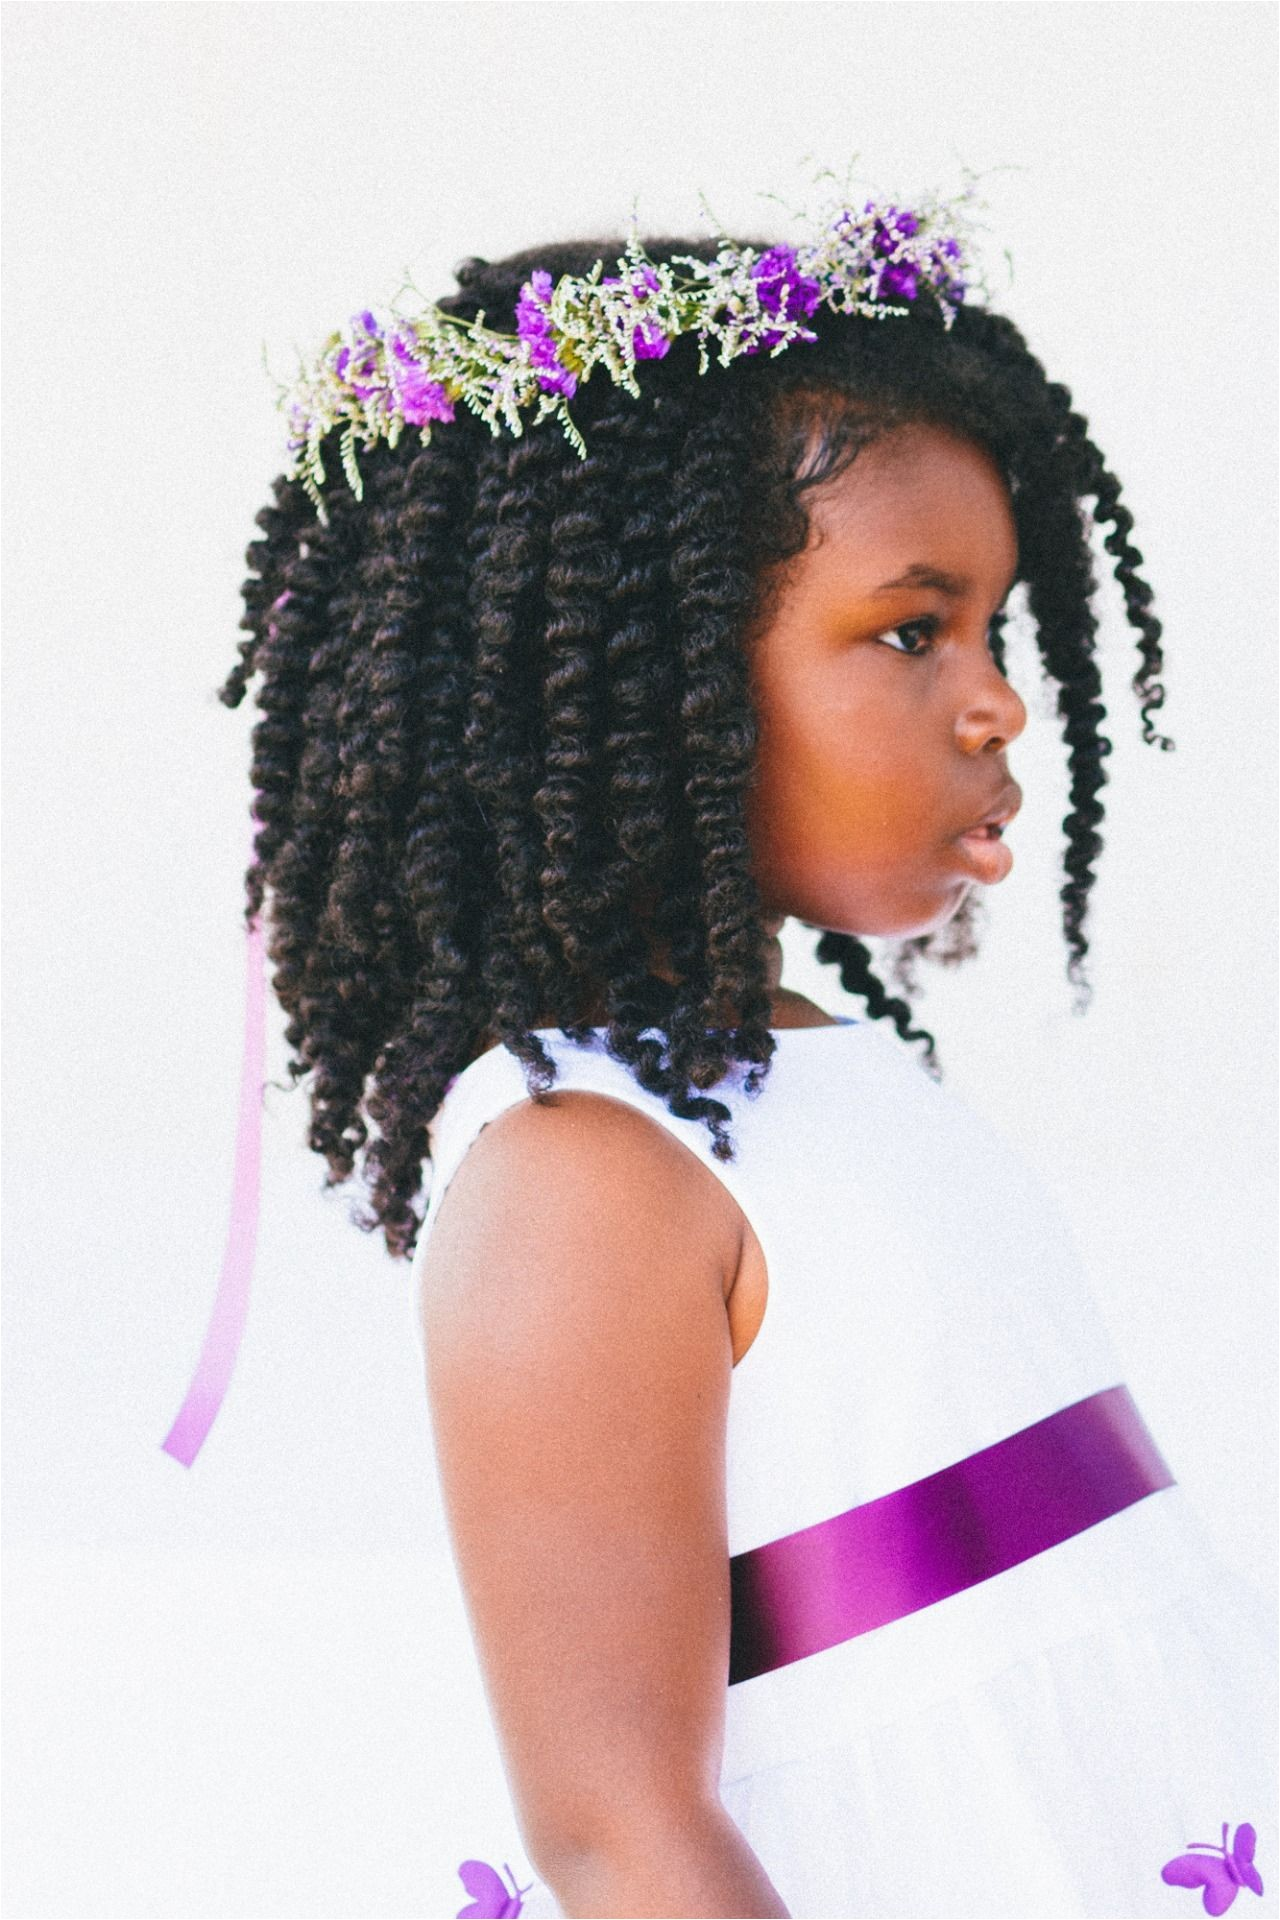 Flower Girl Hairstyles for toddlers songstressaw Flowergirl Fashionista Child Pinterest